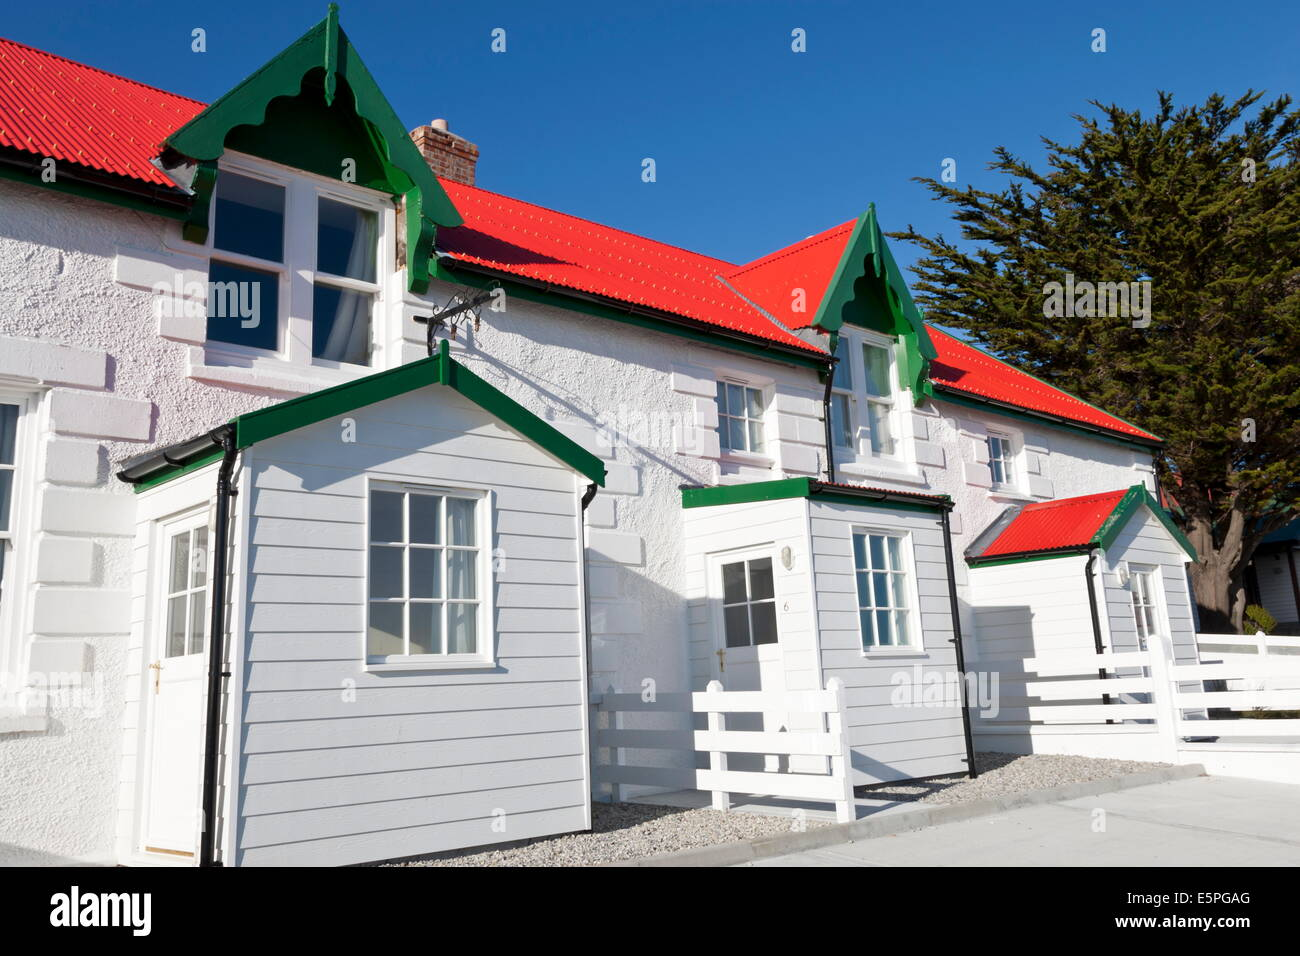 Red and white stone houses of Marmont Row, Victory Green, Stanley, Port Stanley, East Falkland, Falkland Islands, - Stock Image